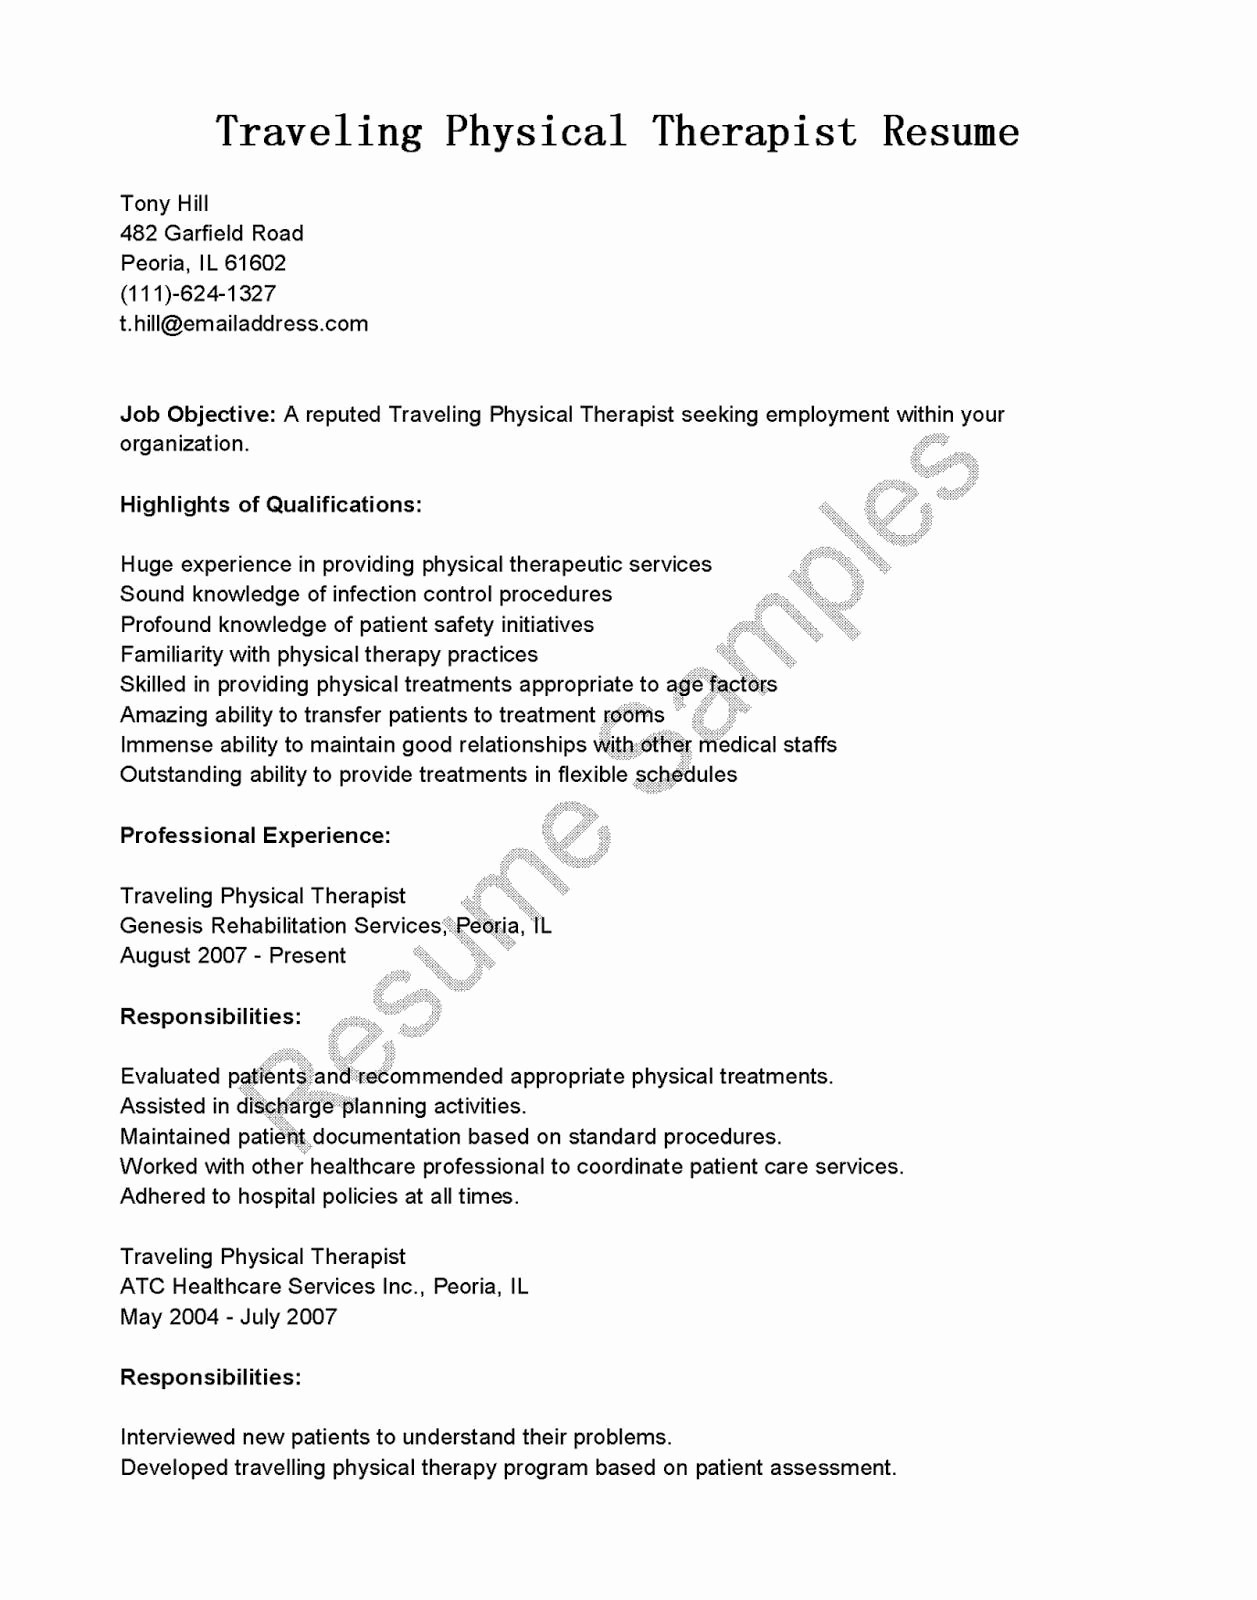 Behavior therapist Resume - Behavior therapist Resume Lovely Mental Health therapist Resume Best